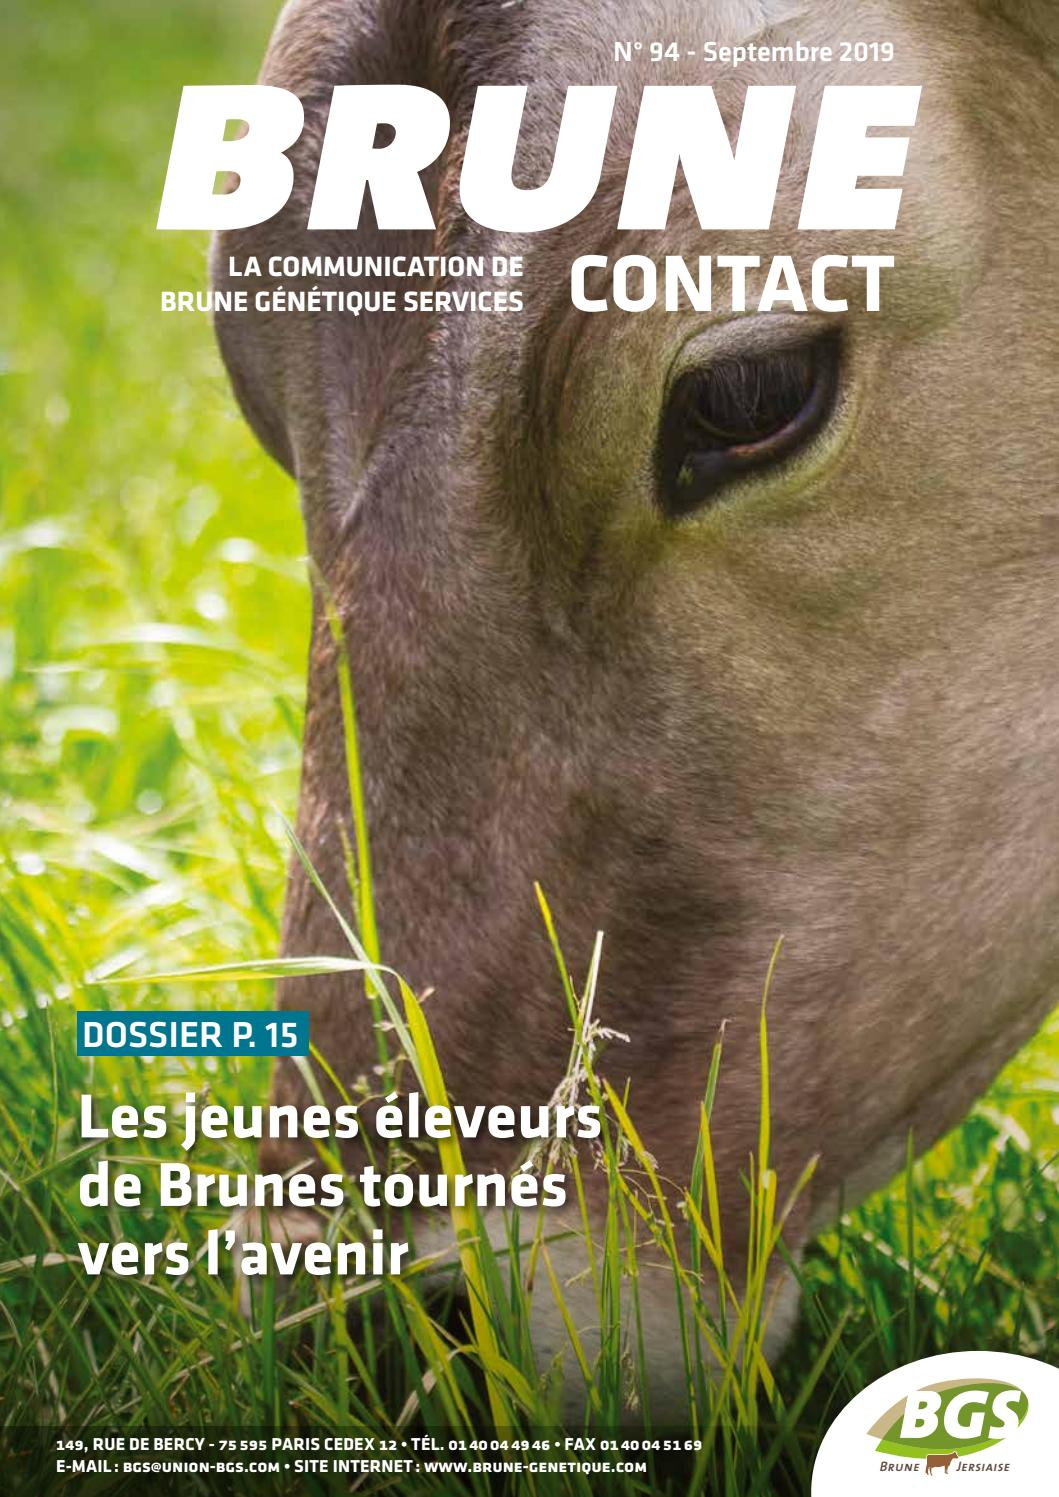 Brune Contact 2019 Numéro 94 by Bulot Olivier - issuu